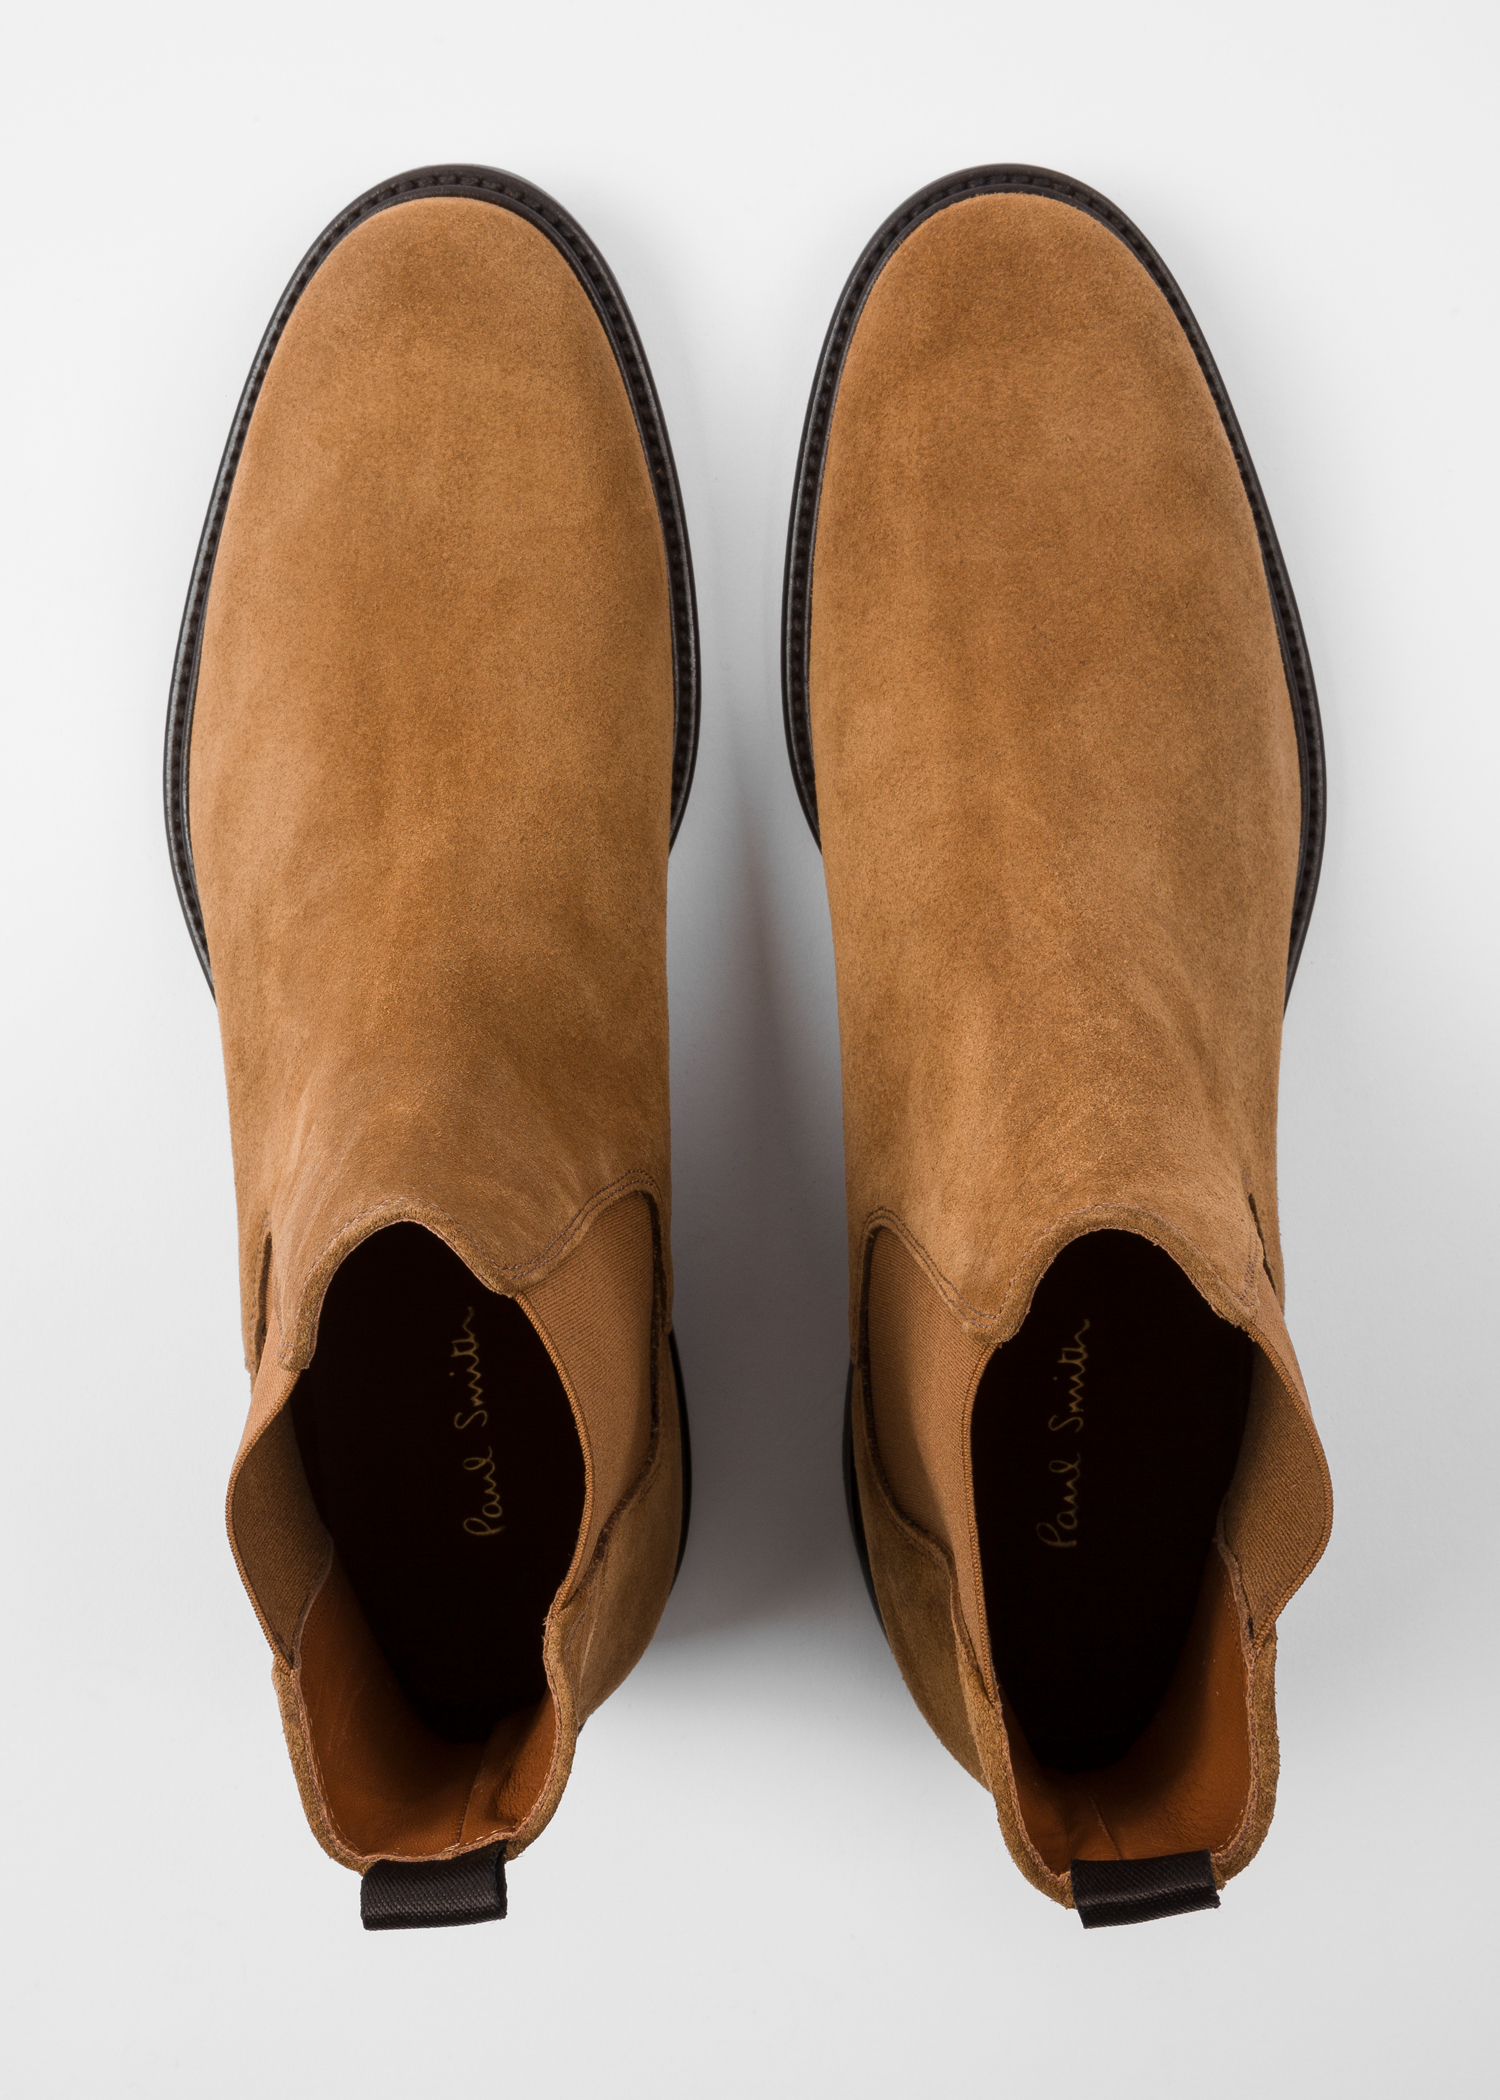 5d8cba340bfe Top down view - Men's Tan Suede 'Jake' Chelsea Boots Paul Smith